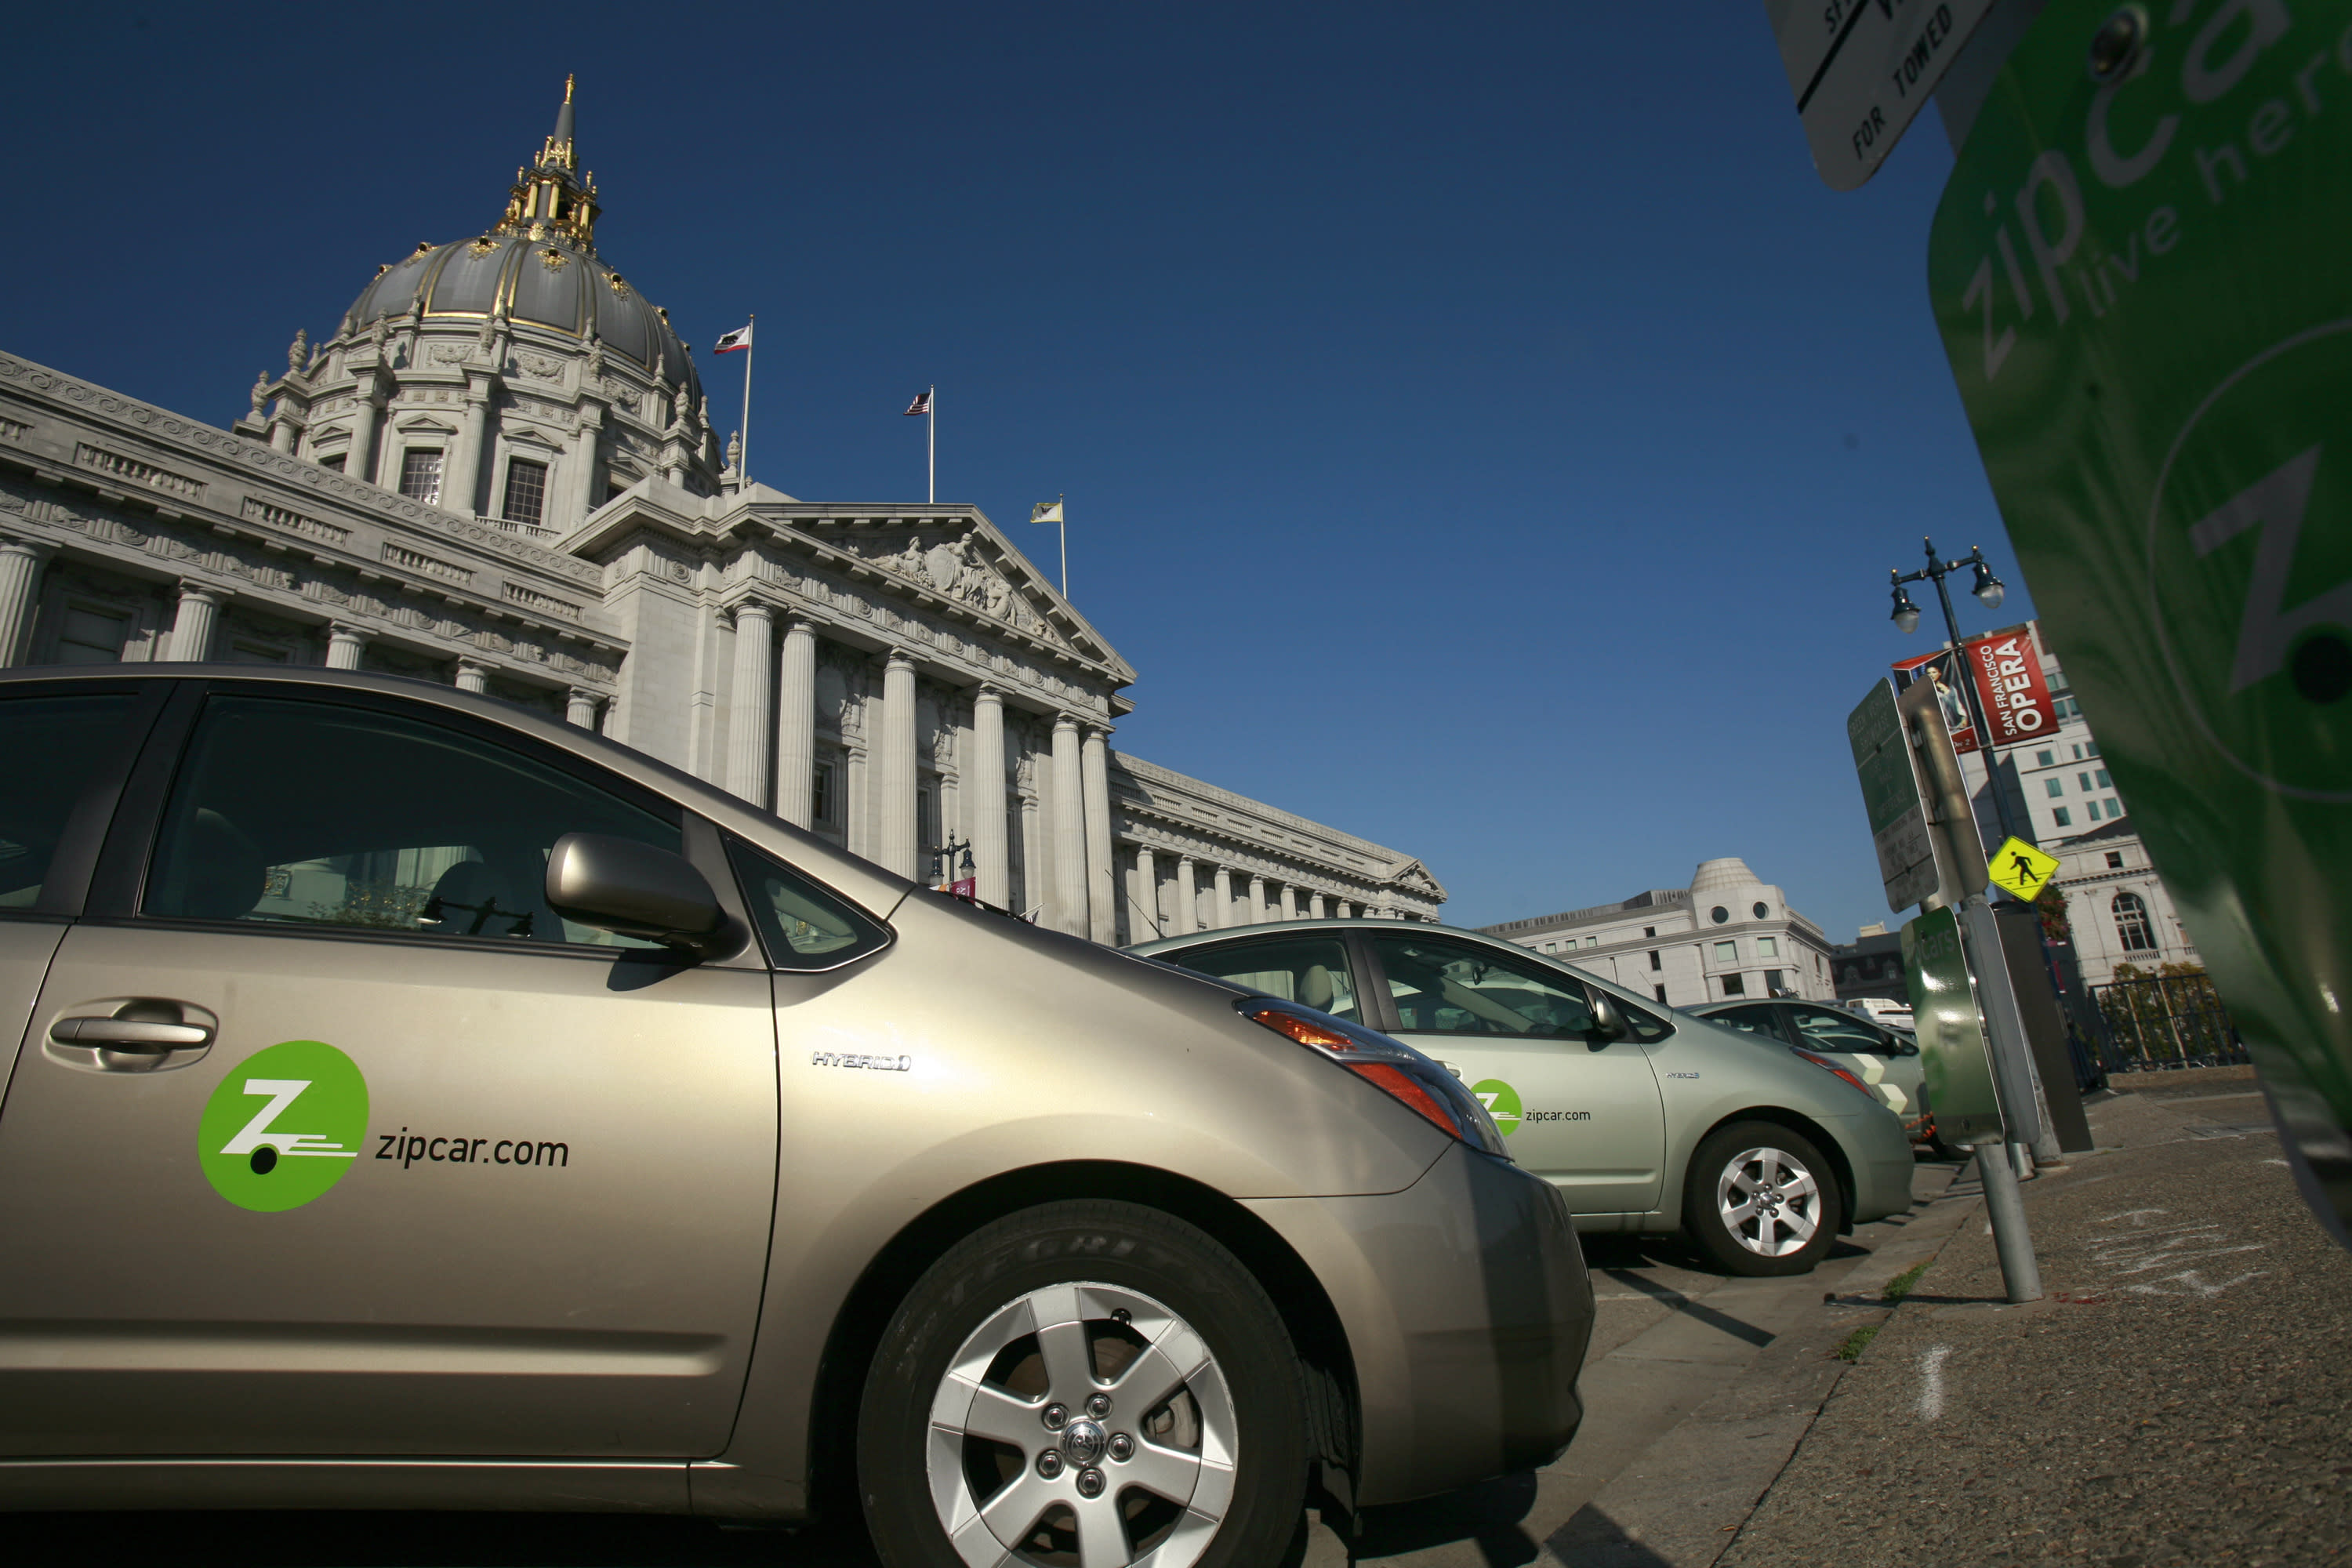 zipcar customers are becoming disillusioned for one troubling reason rh finance yahoo com